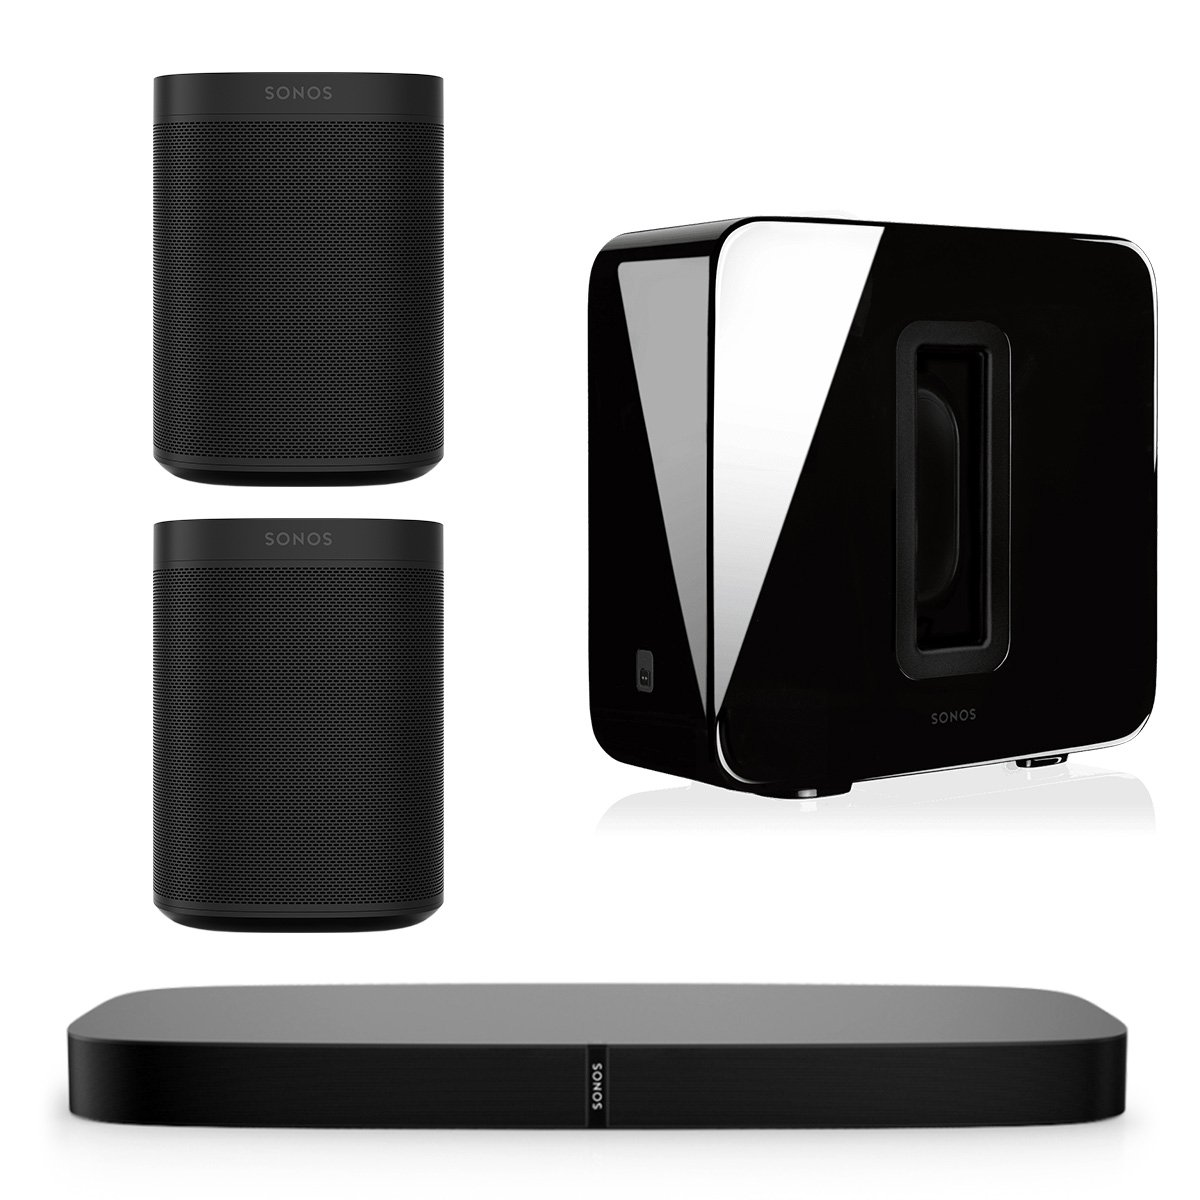 Sonos 5.1 PLAYBASE Home Theater System with Sonos ONE Streaming Speakers (Pair) and SUB Wireless Subwoofer (Black)